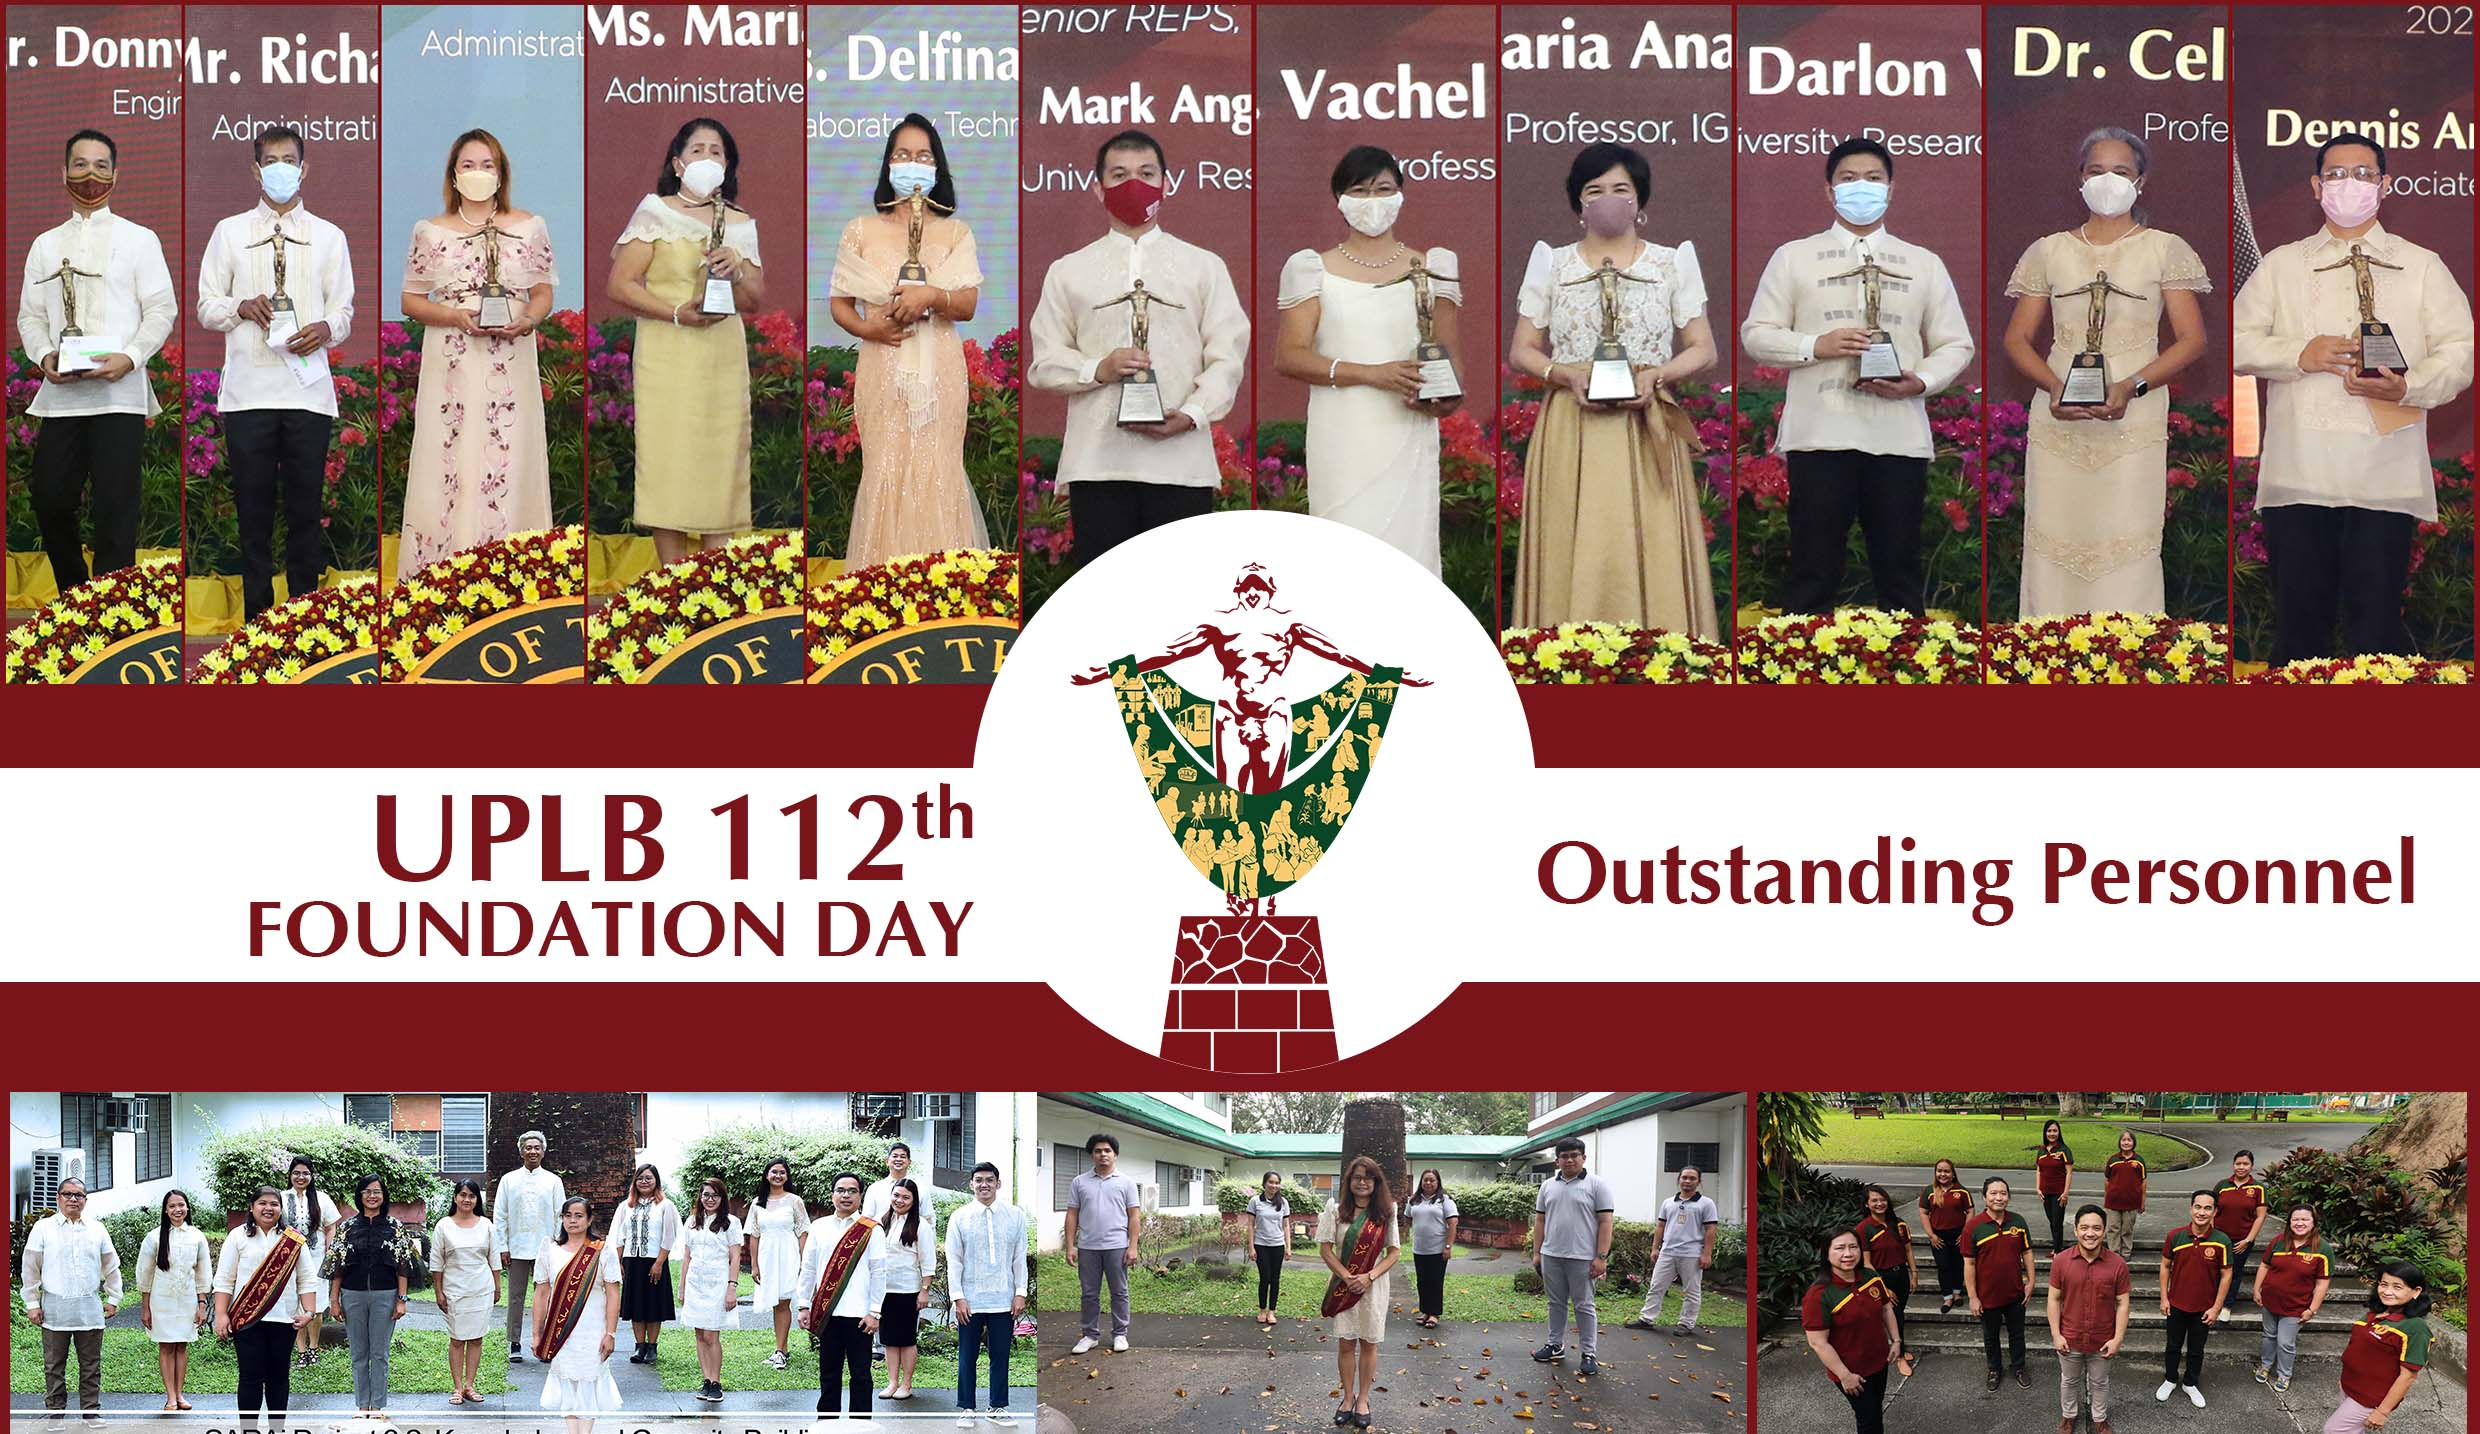 Outstanding personnel awarded at 112th Foundation Day anniv